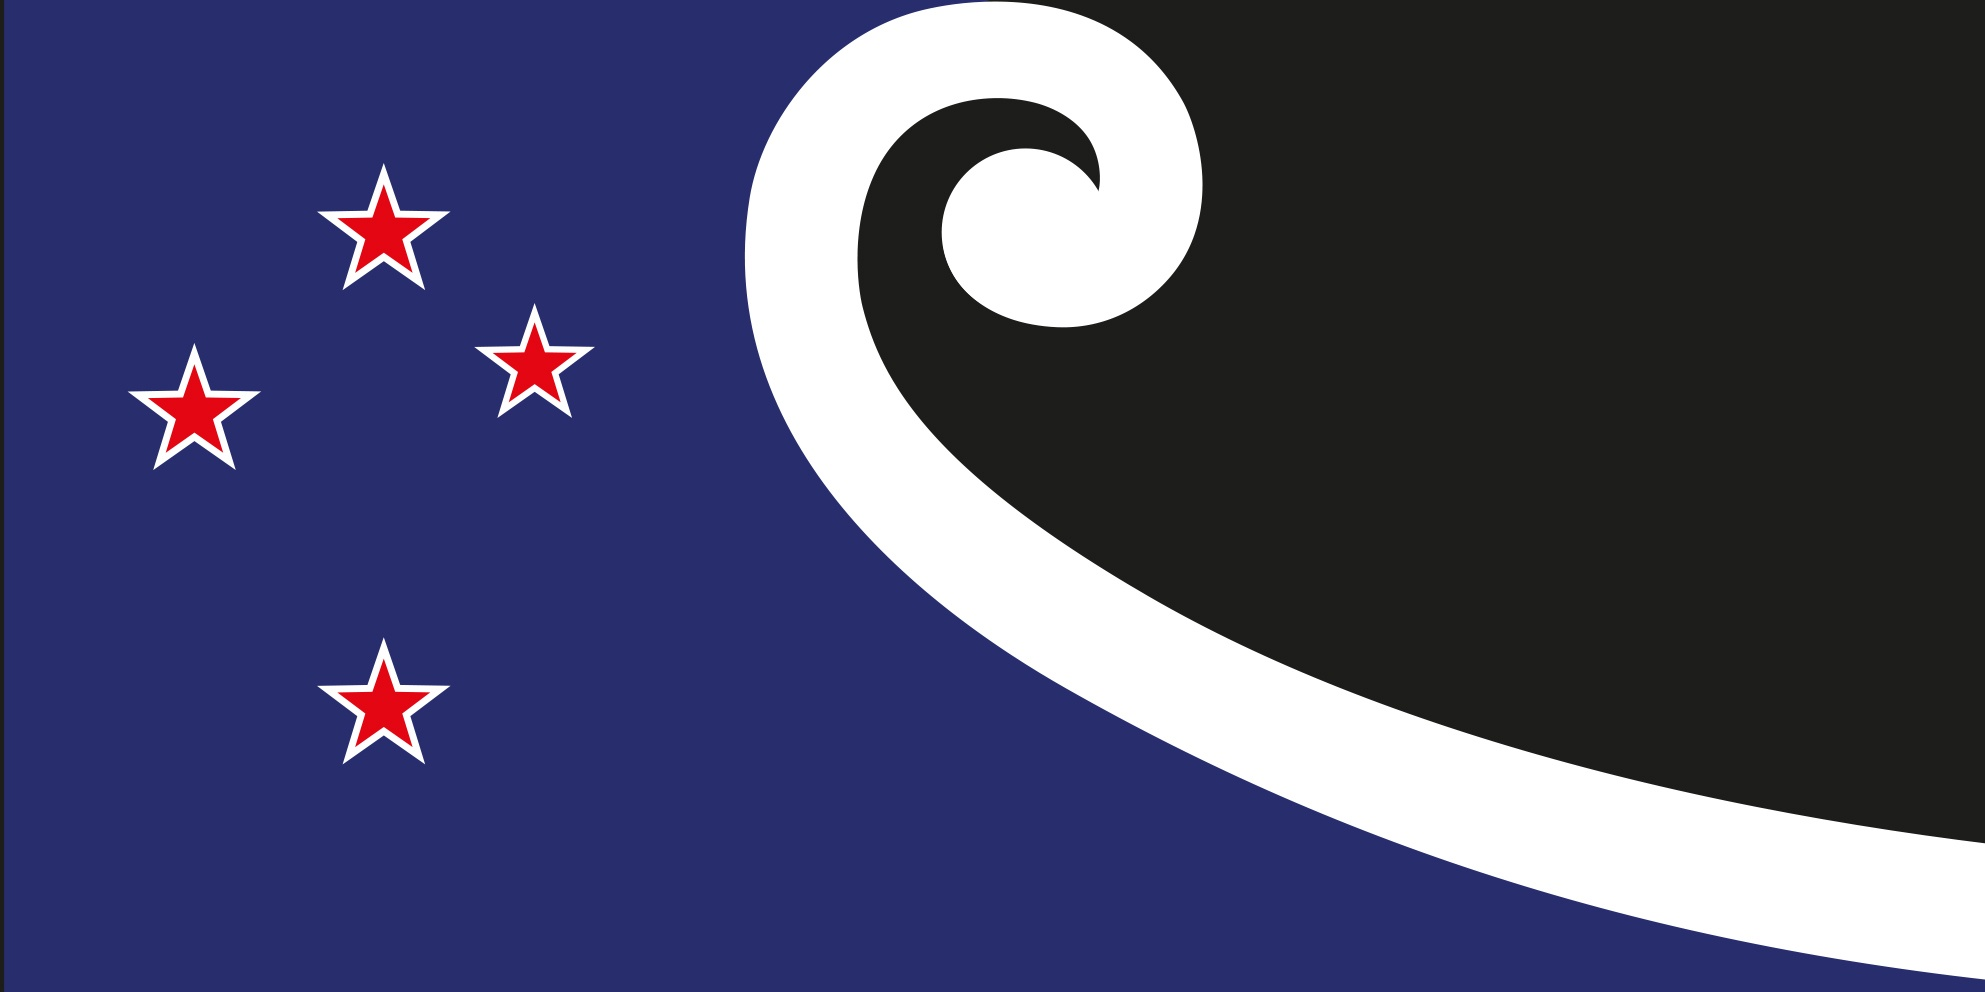 File:NZ flag design Finding Unity in Community by Dave Sauvage.jpg ...